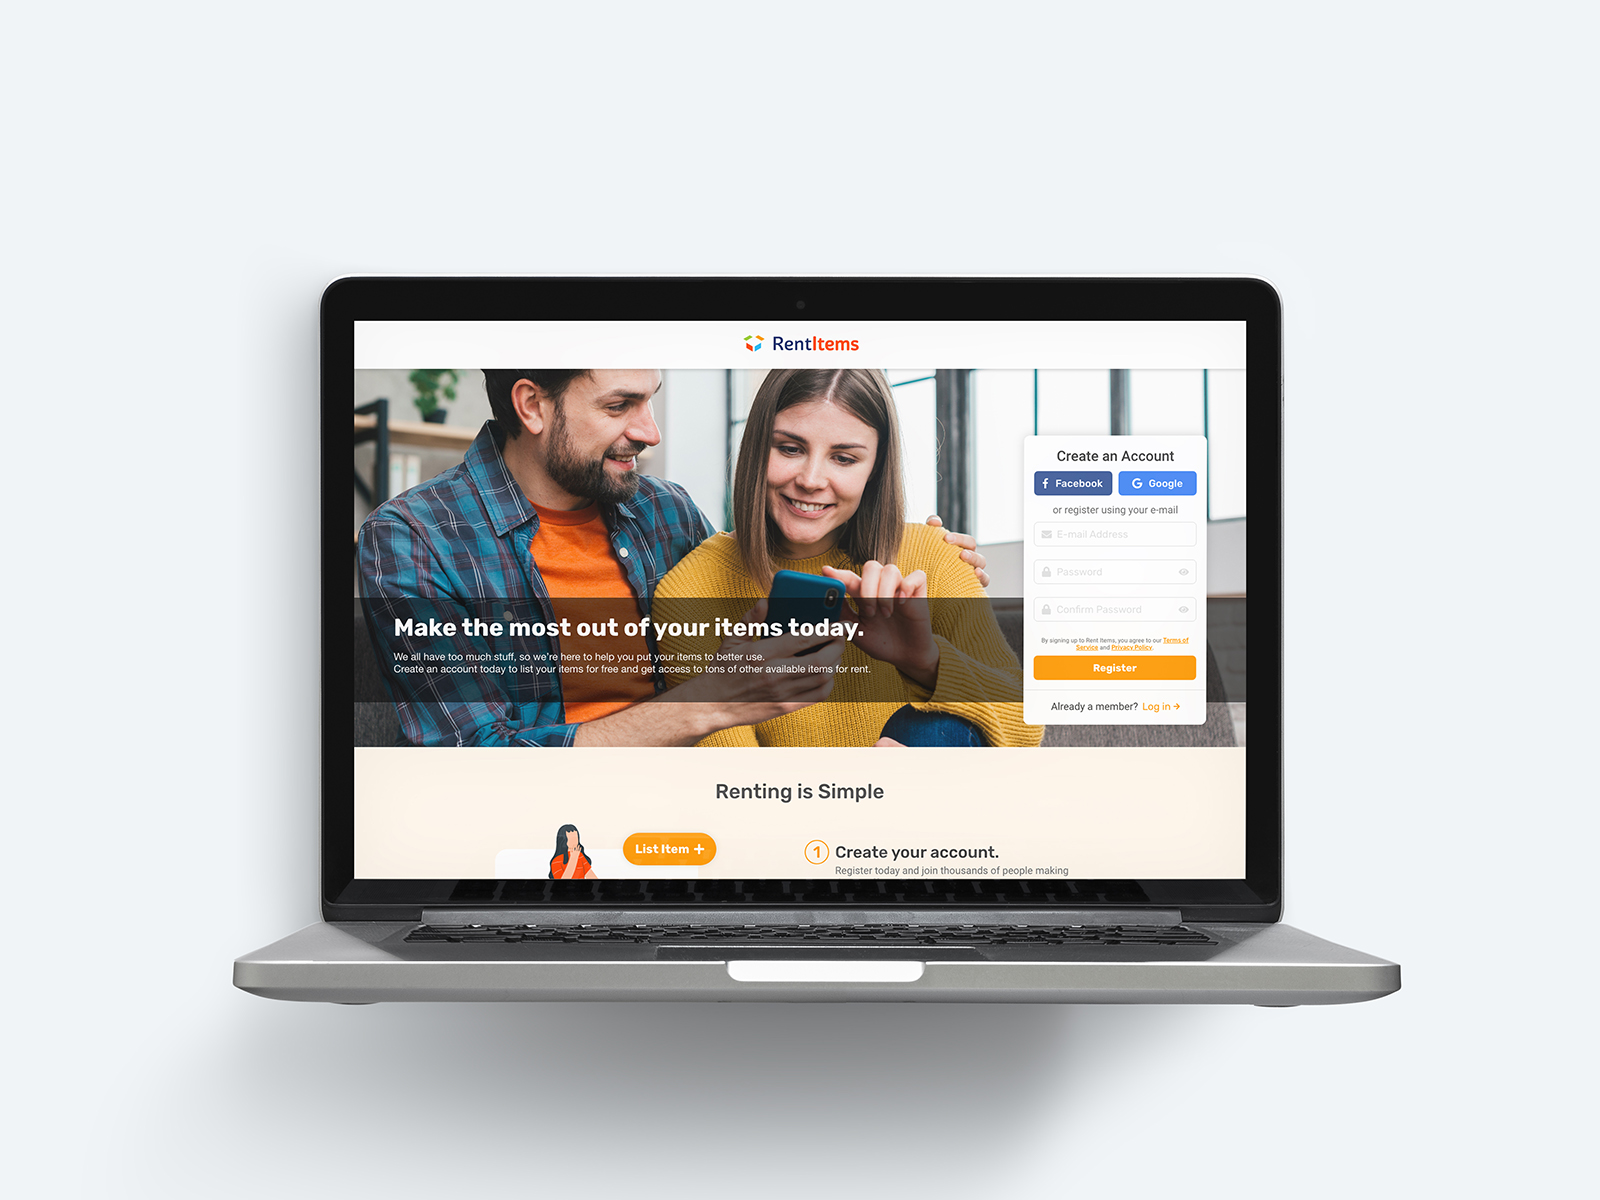 A laptop showing the user interface of rental marketplace home page